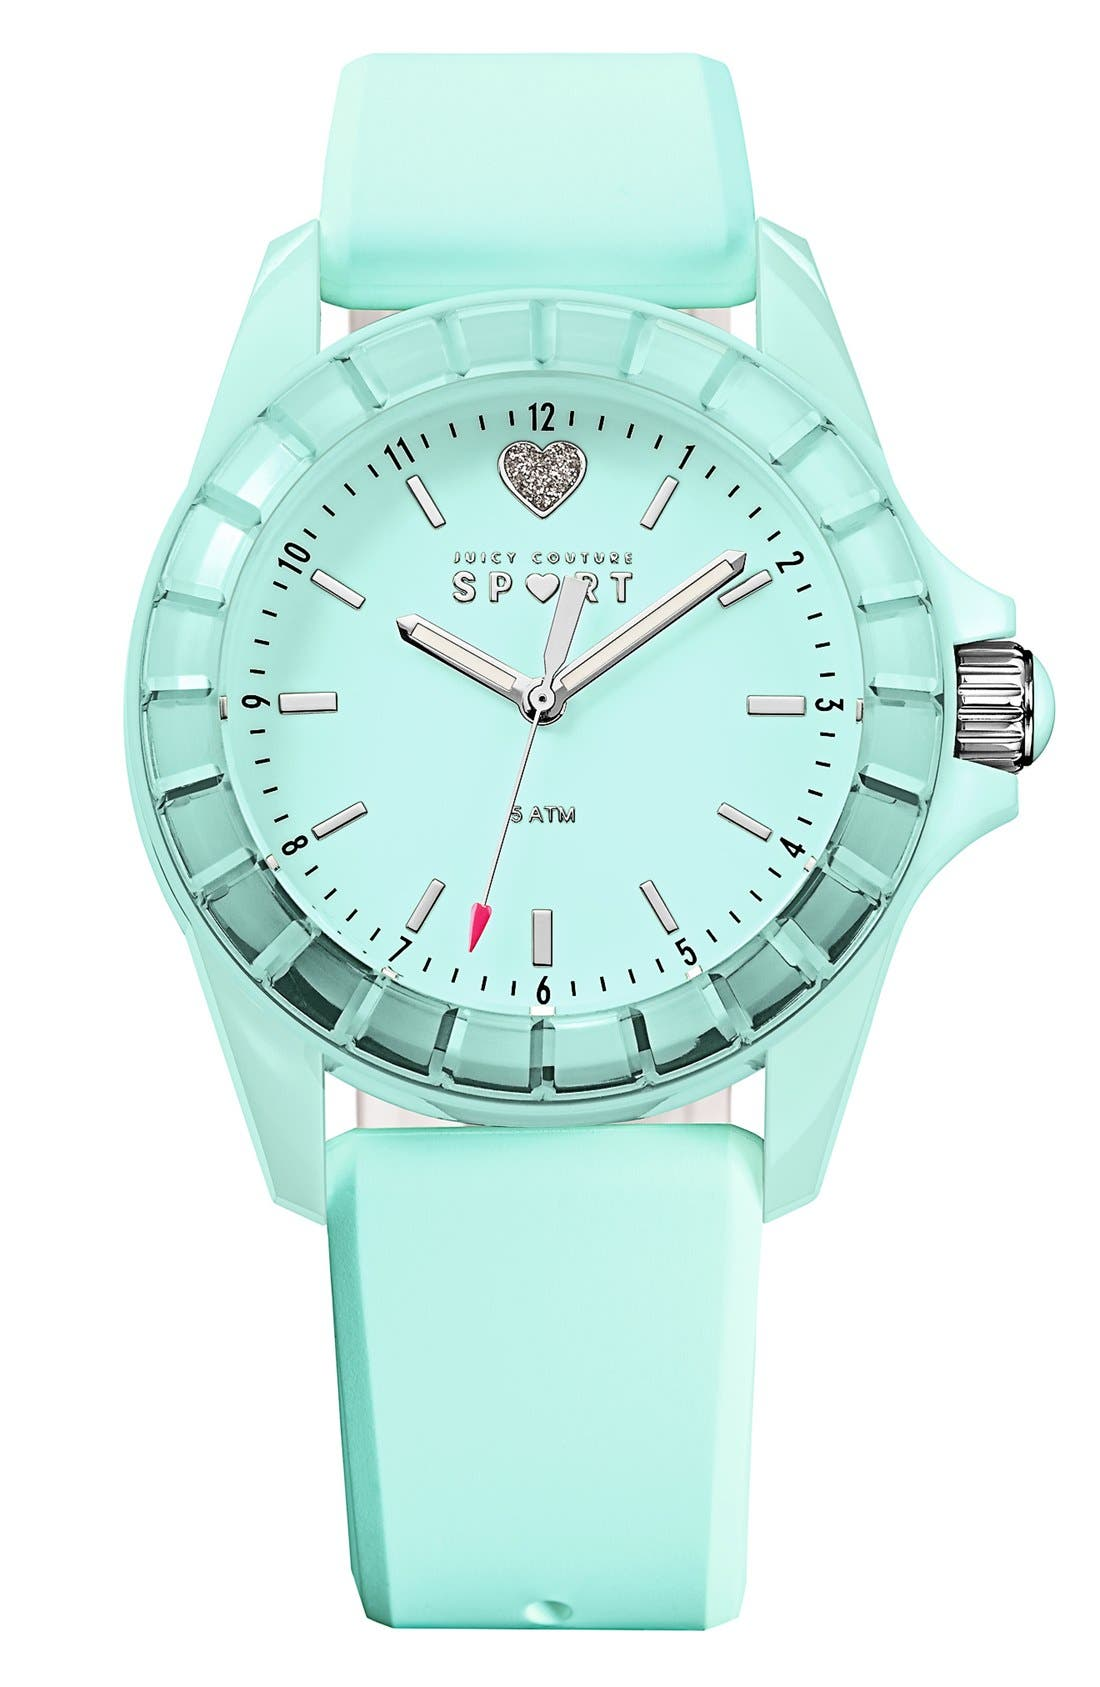 Main Image - Juicy Couture 'Sport' Crystal Bezel Silicone Strap Watch, 40mm